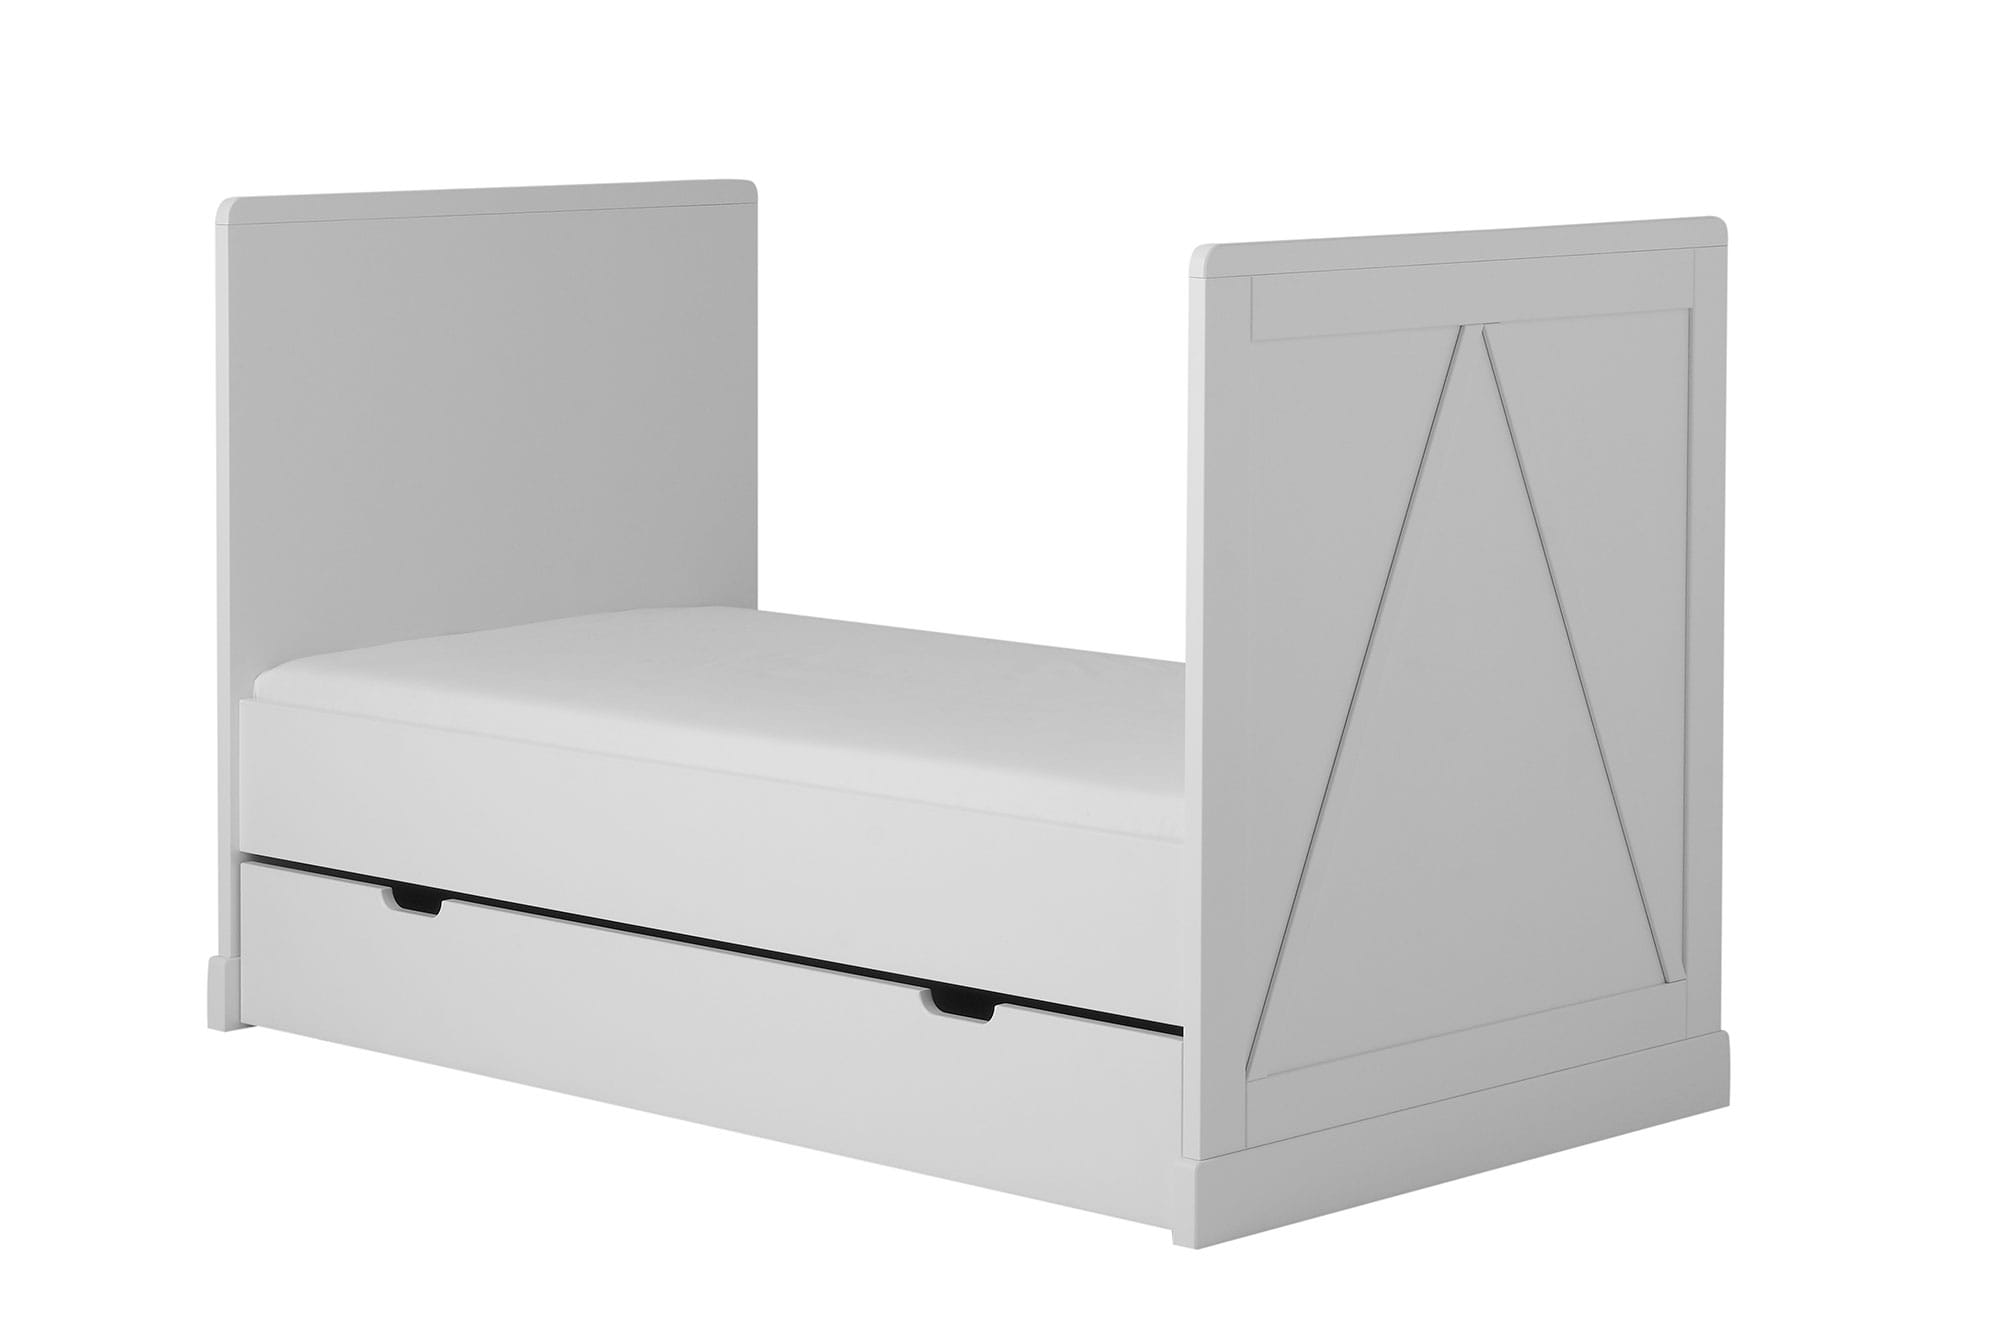 Marie_cot-bed140x70_white_6.jpg